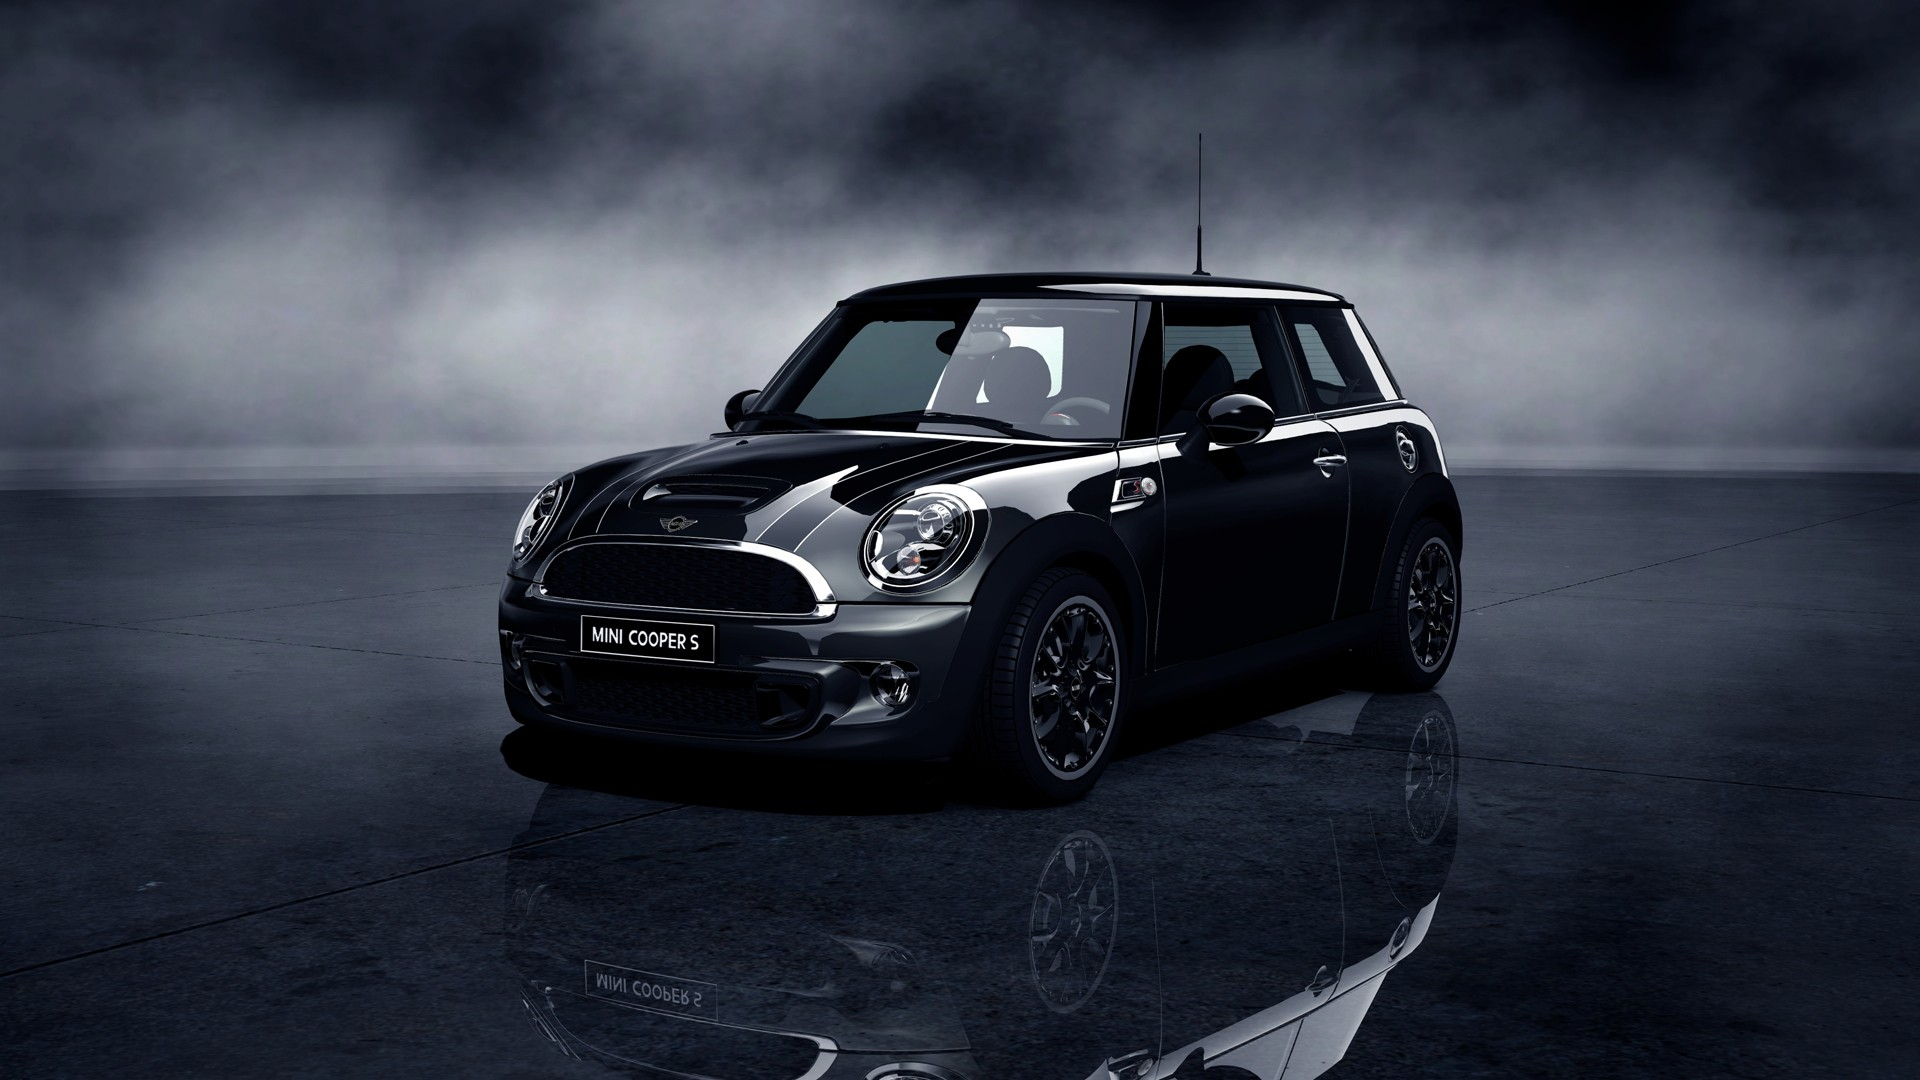 mini cooper hd wallpapers 1920x1080